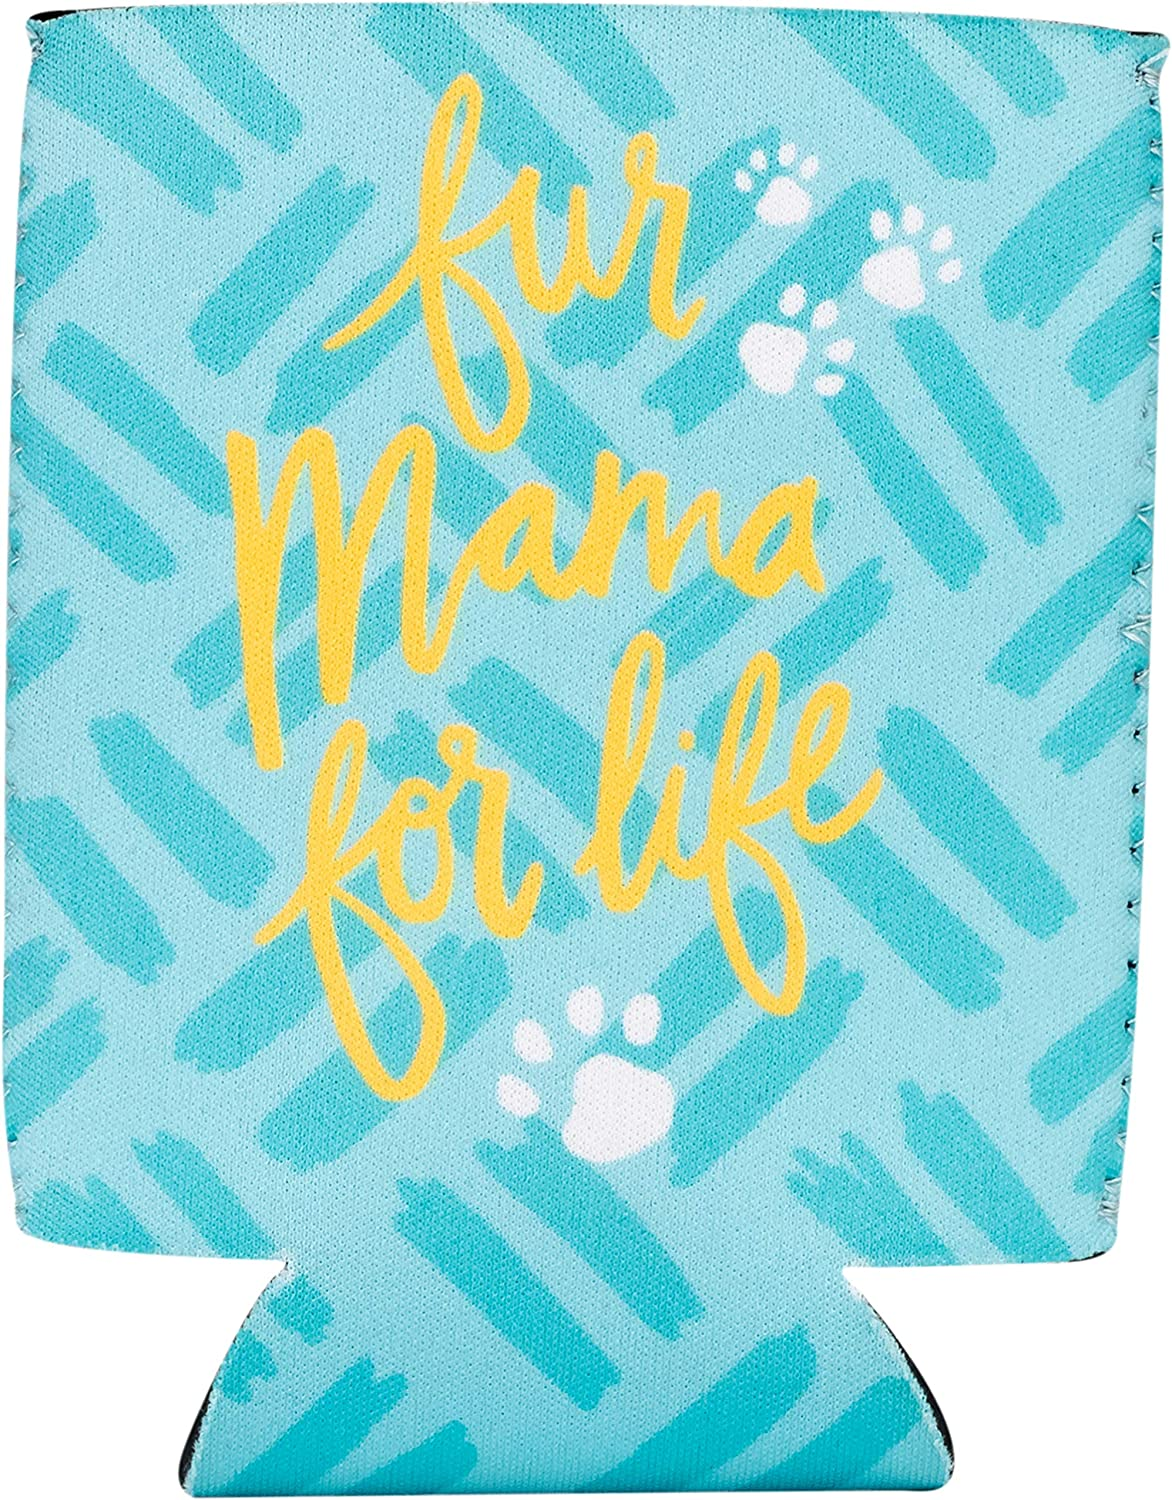 About Face Designs Fur Mama for Life On Blue 4 x 4.75 Neoprene Beverage Sleeve